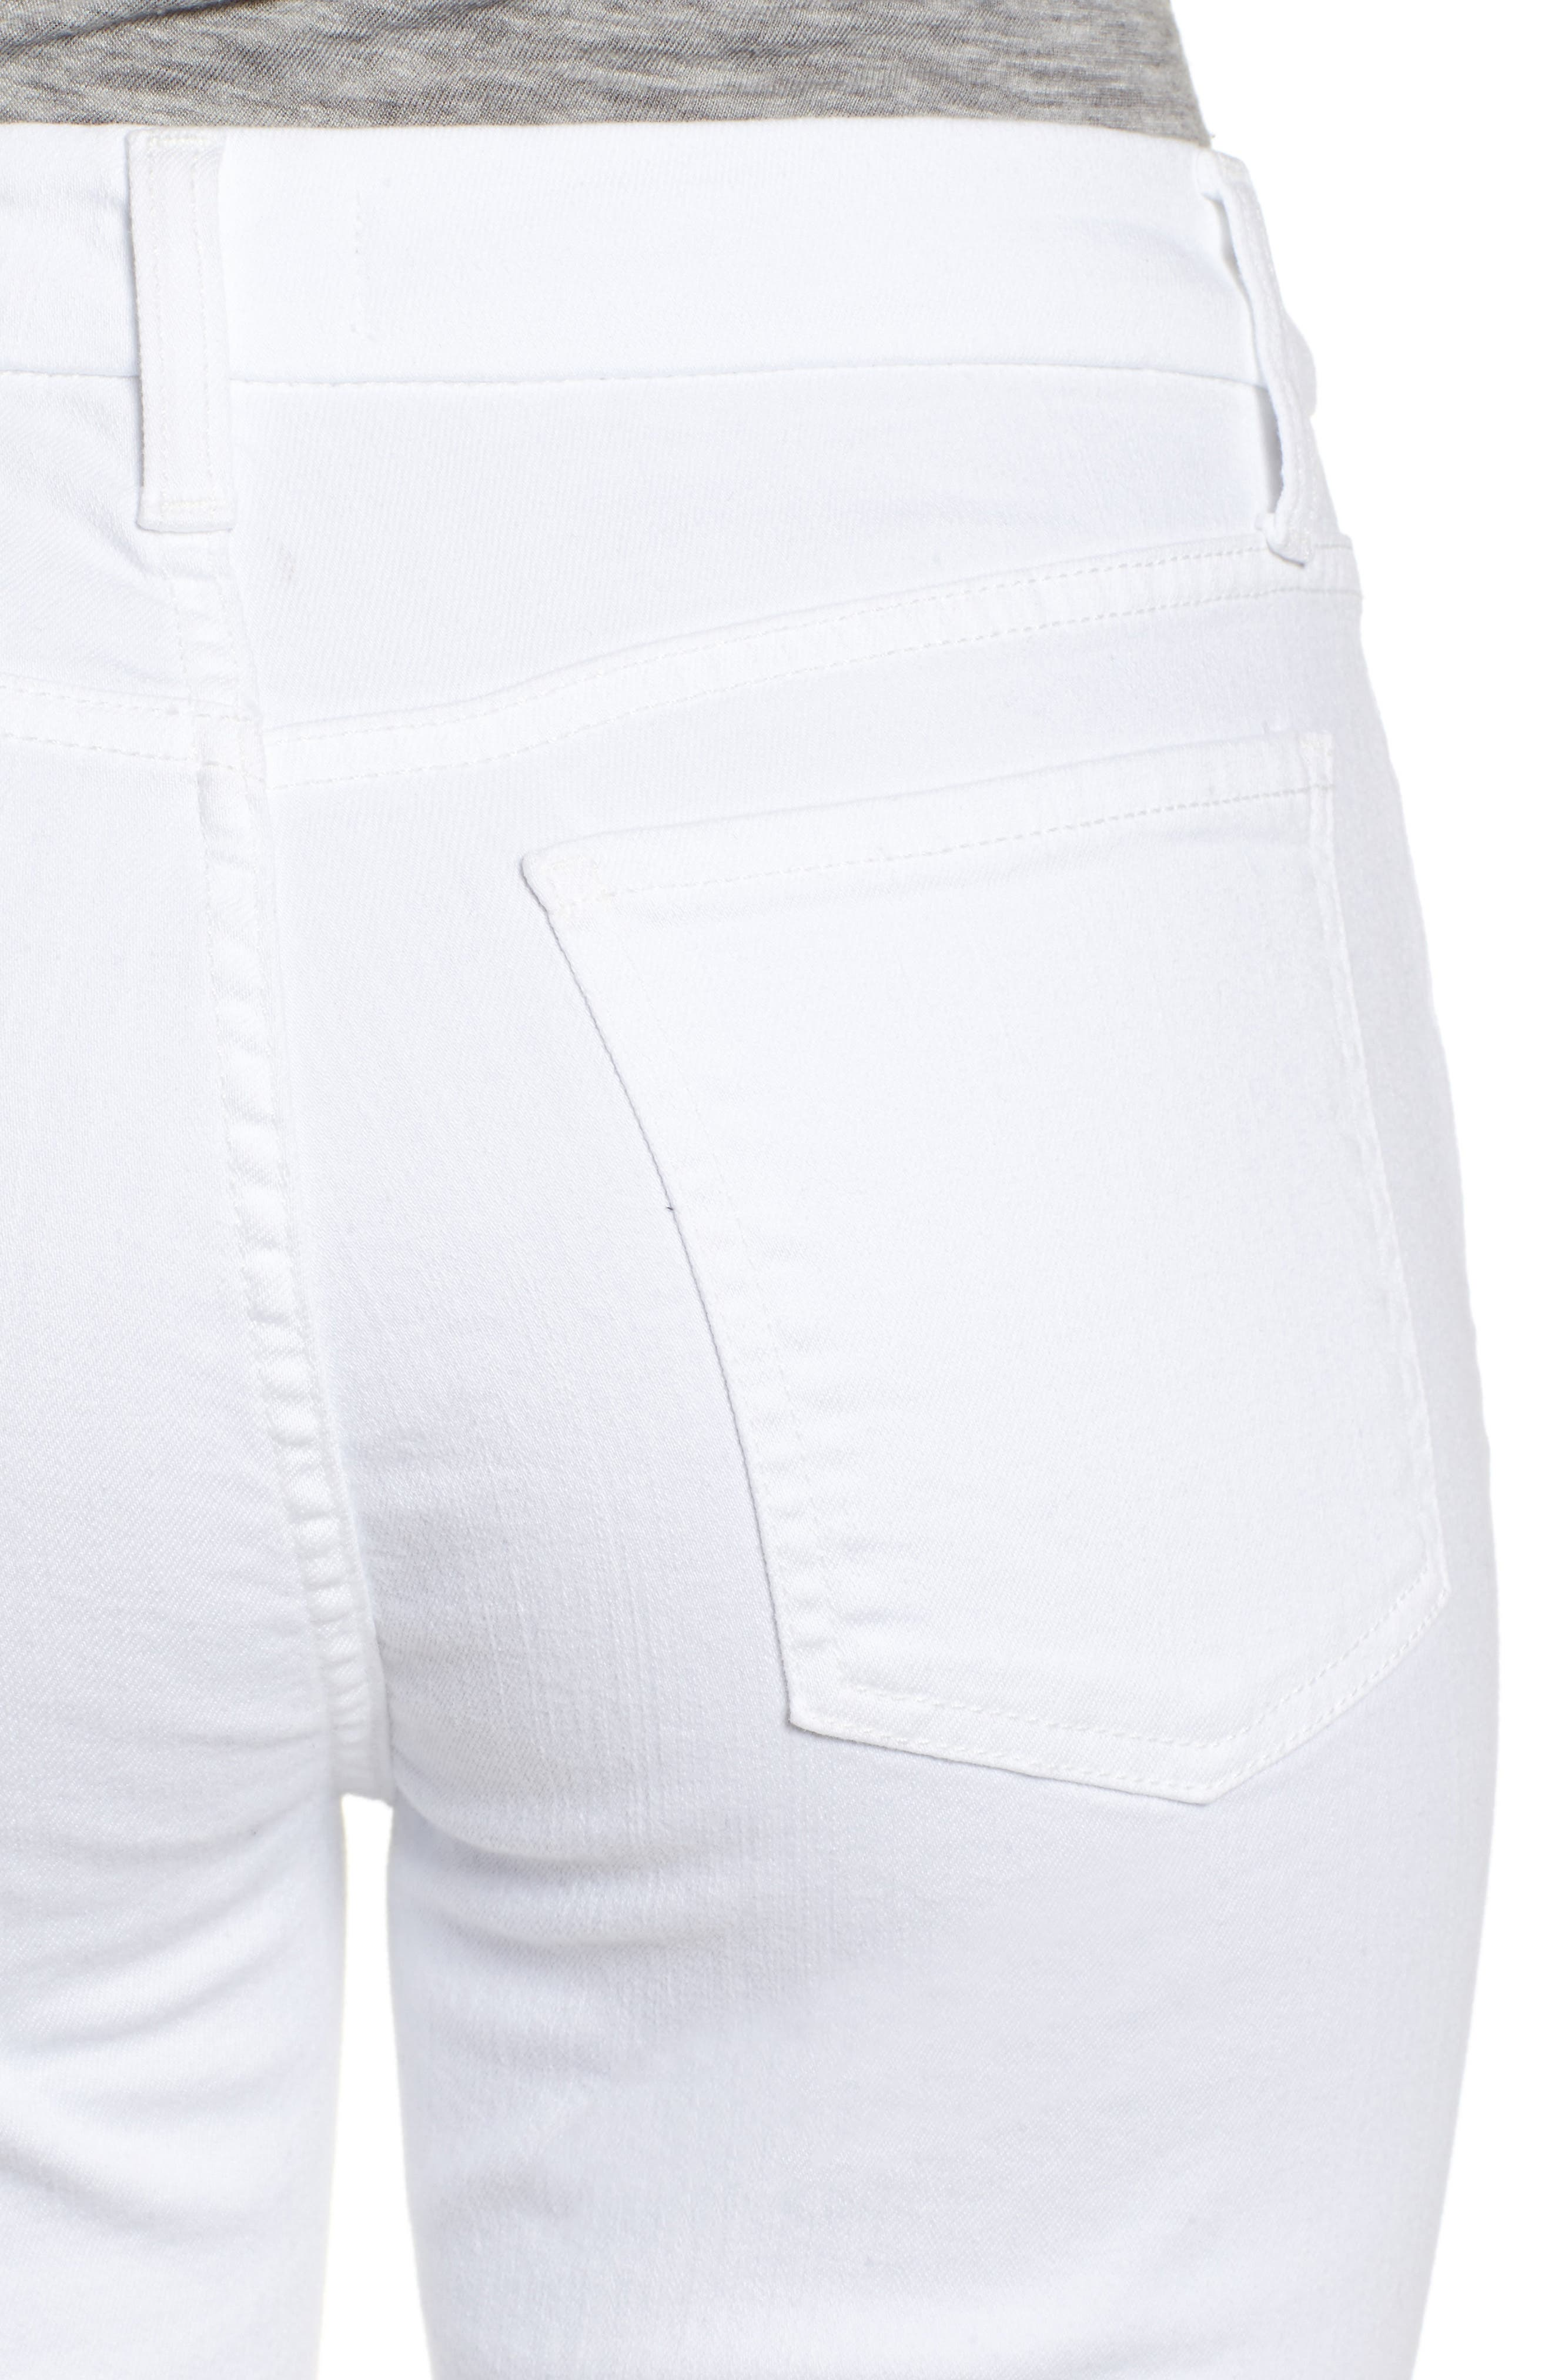 Ankle Skinny Jeans,                             Alternate thumbnail 4, color,                             WHITE FASION